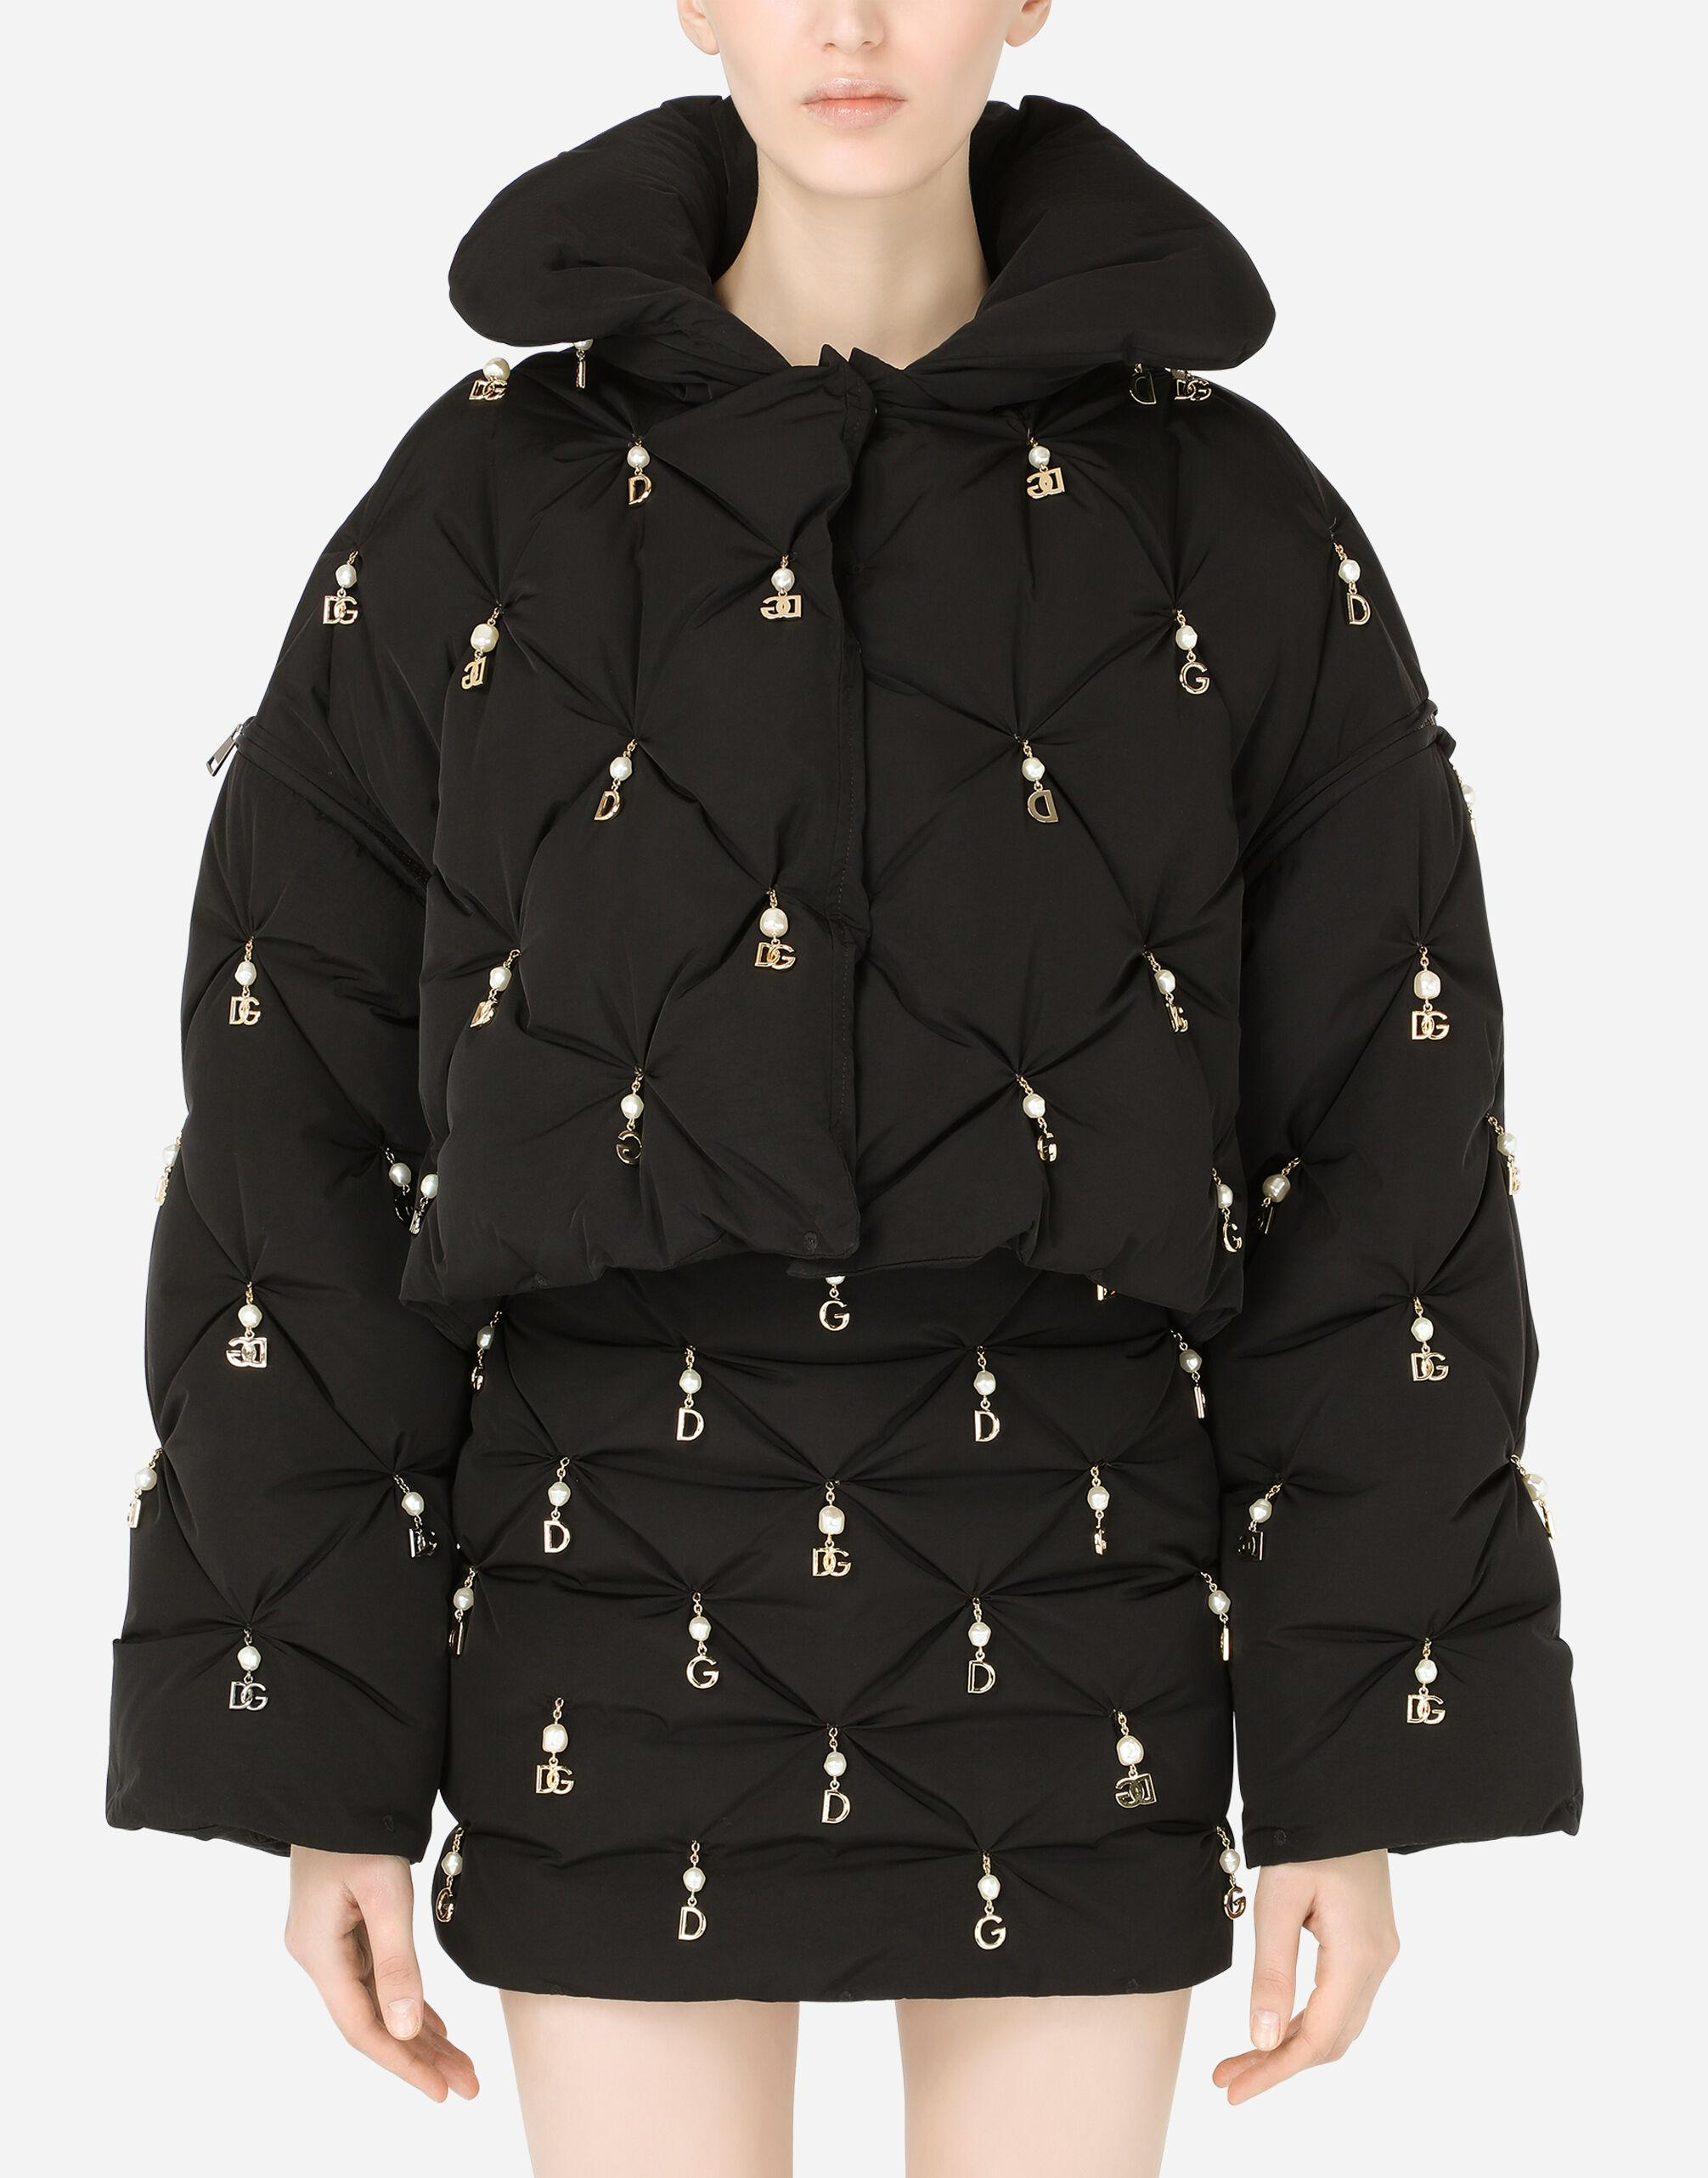 Quilted down jacket with pearl pendant embellishment and DG logo